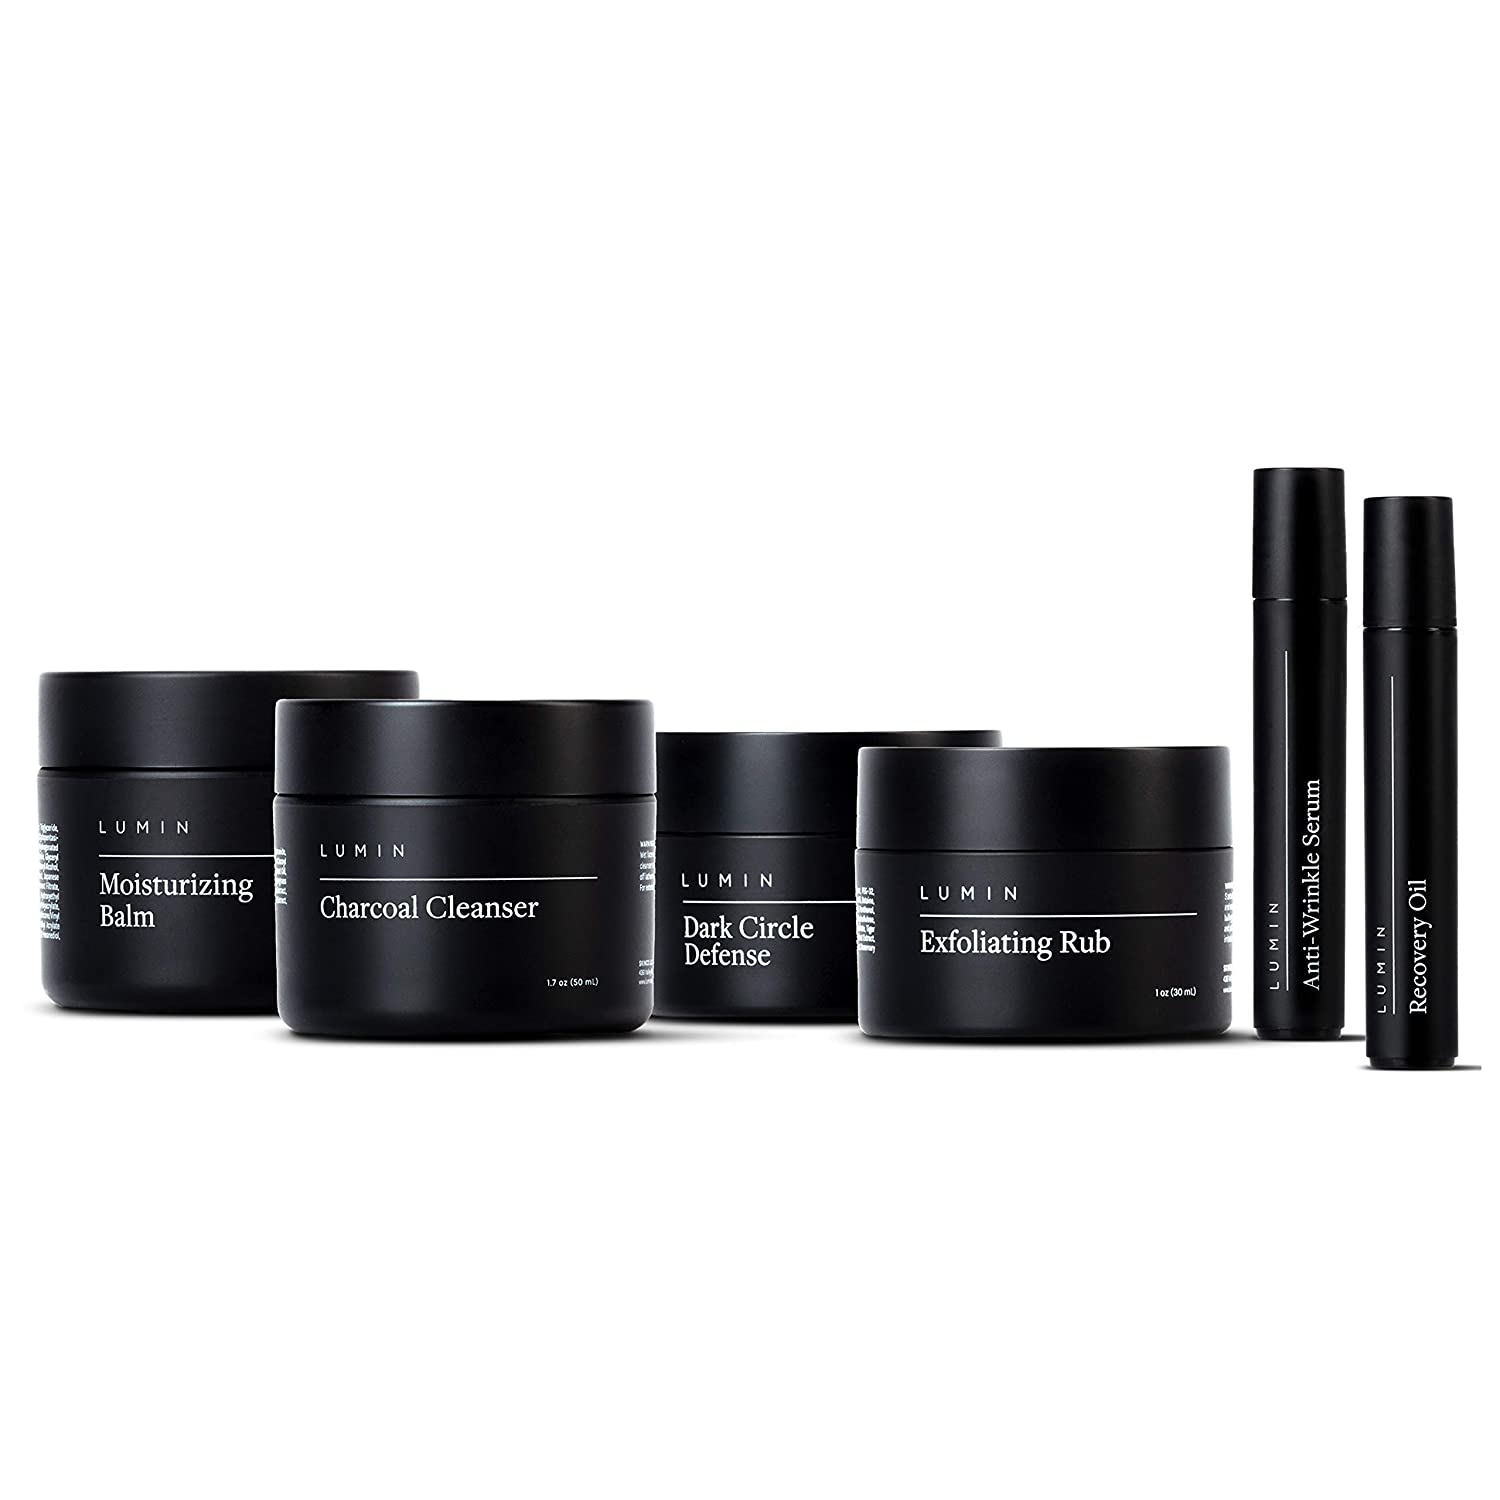 Lumin Complete Skincare Gift Set for Men; men's grooming products